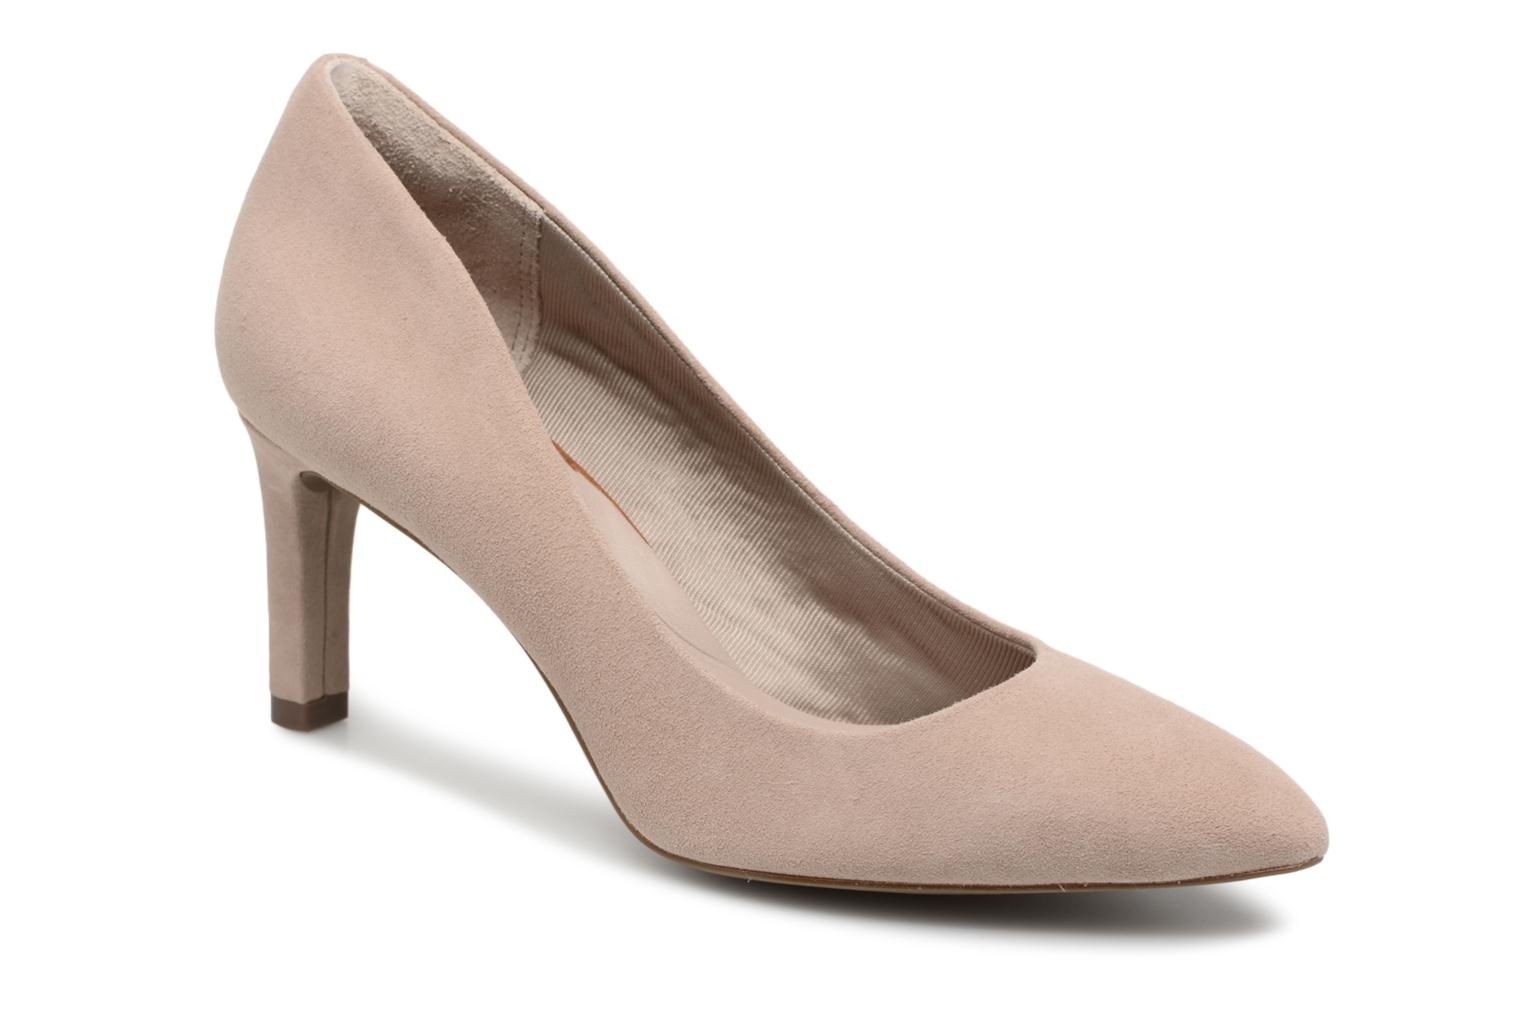 Marques Chaussure femme Rockport femme TM Valerie Luxe GR Dove